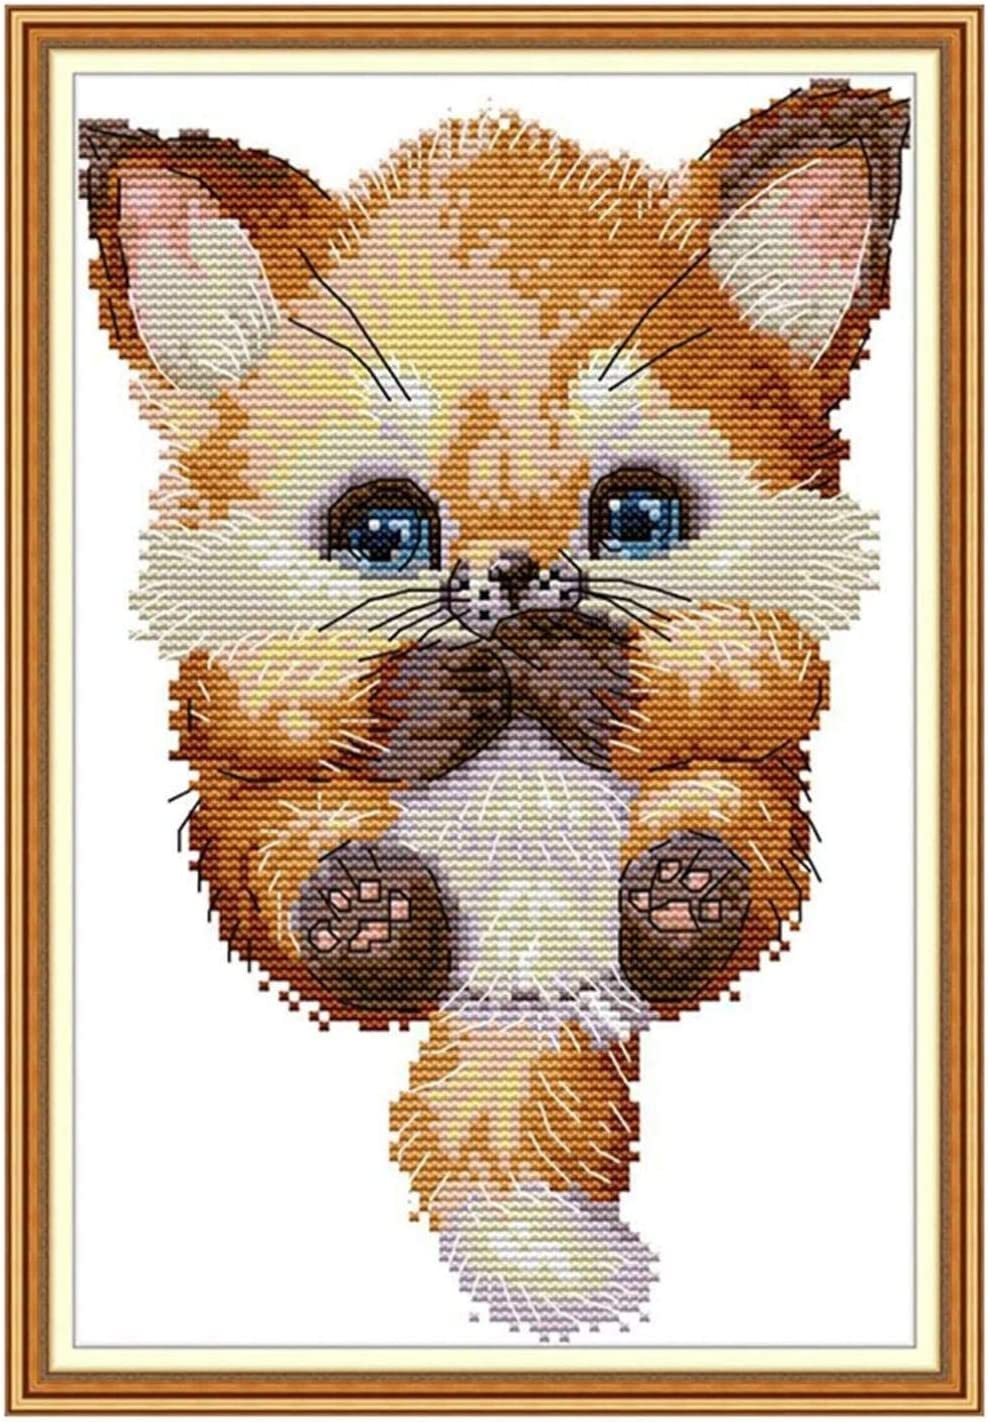 Stamped Cross Stitch Kits Beginners Embroidery for Overseas parallel import regular item Finally resale start Adult Lovely